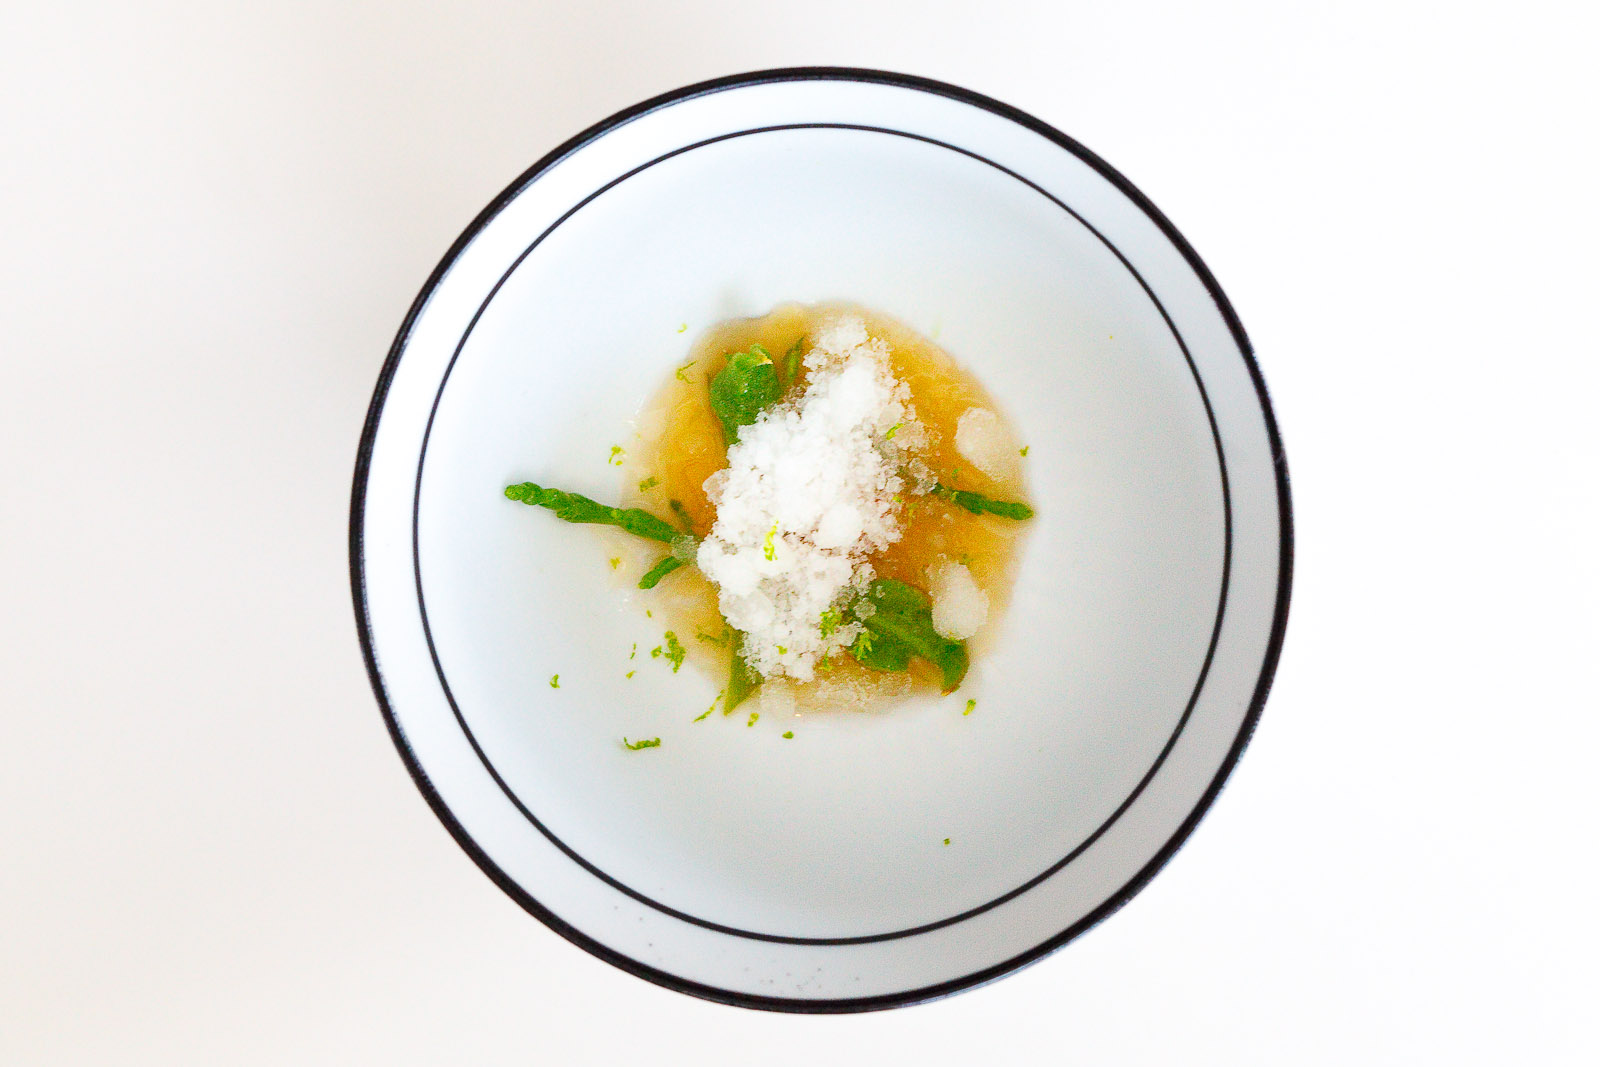 3rd Course: Dew